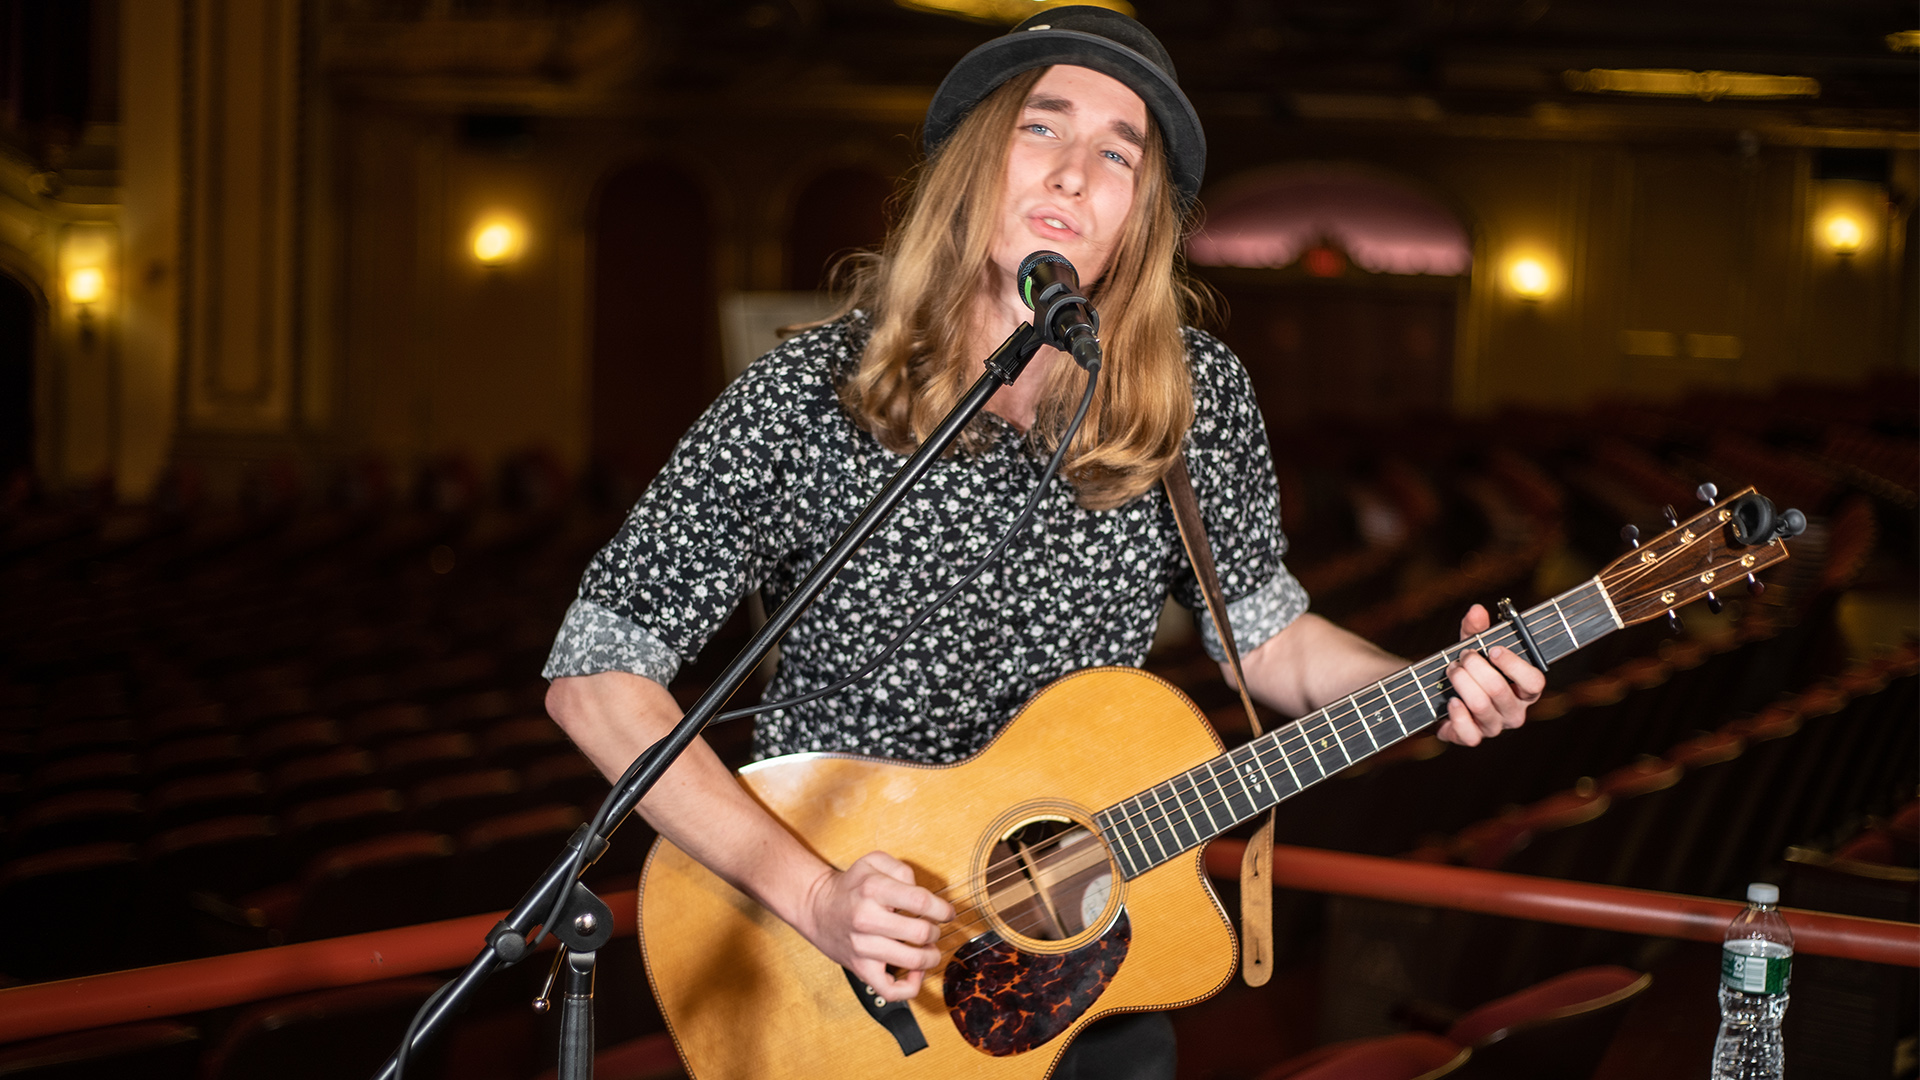 """VIDEO: Sawyer Fredericks Performs """"Amen"""" Live at the Palace Theatre in Albany, NY"""